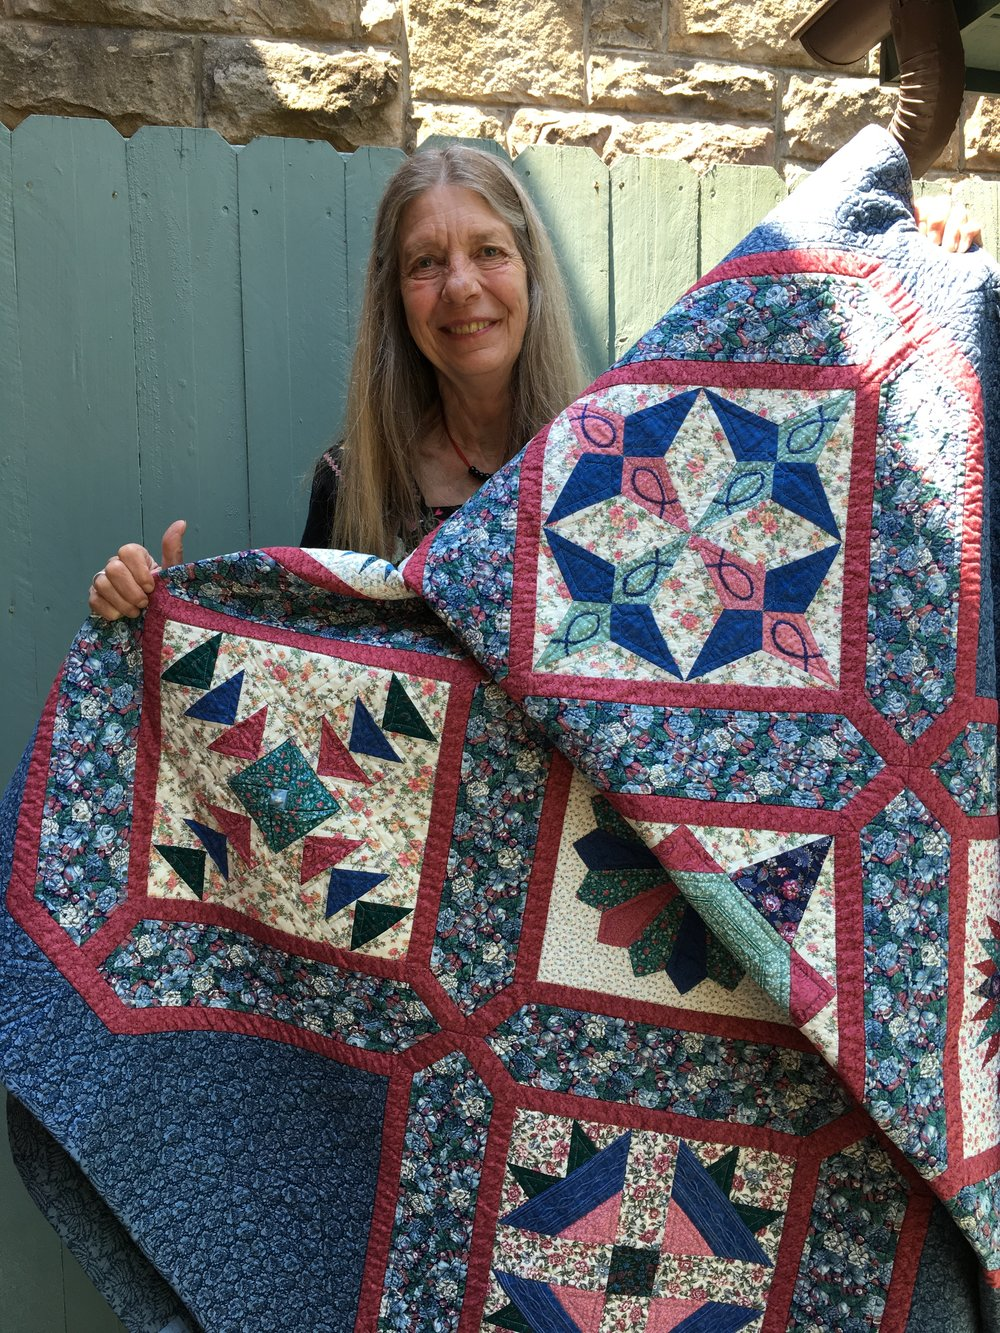 Terry Jo Miller of Beverly, WV, is the 2018 Winner of the hand made quilt by Fran Kordek